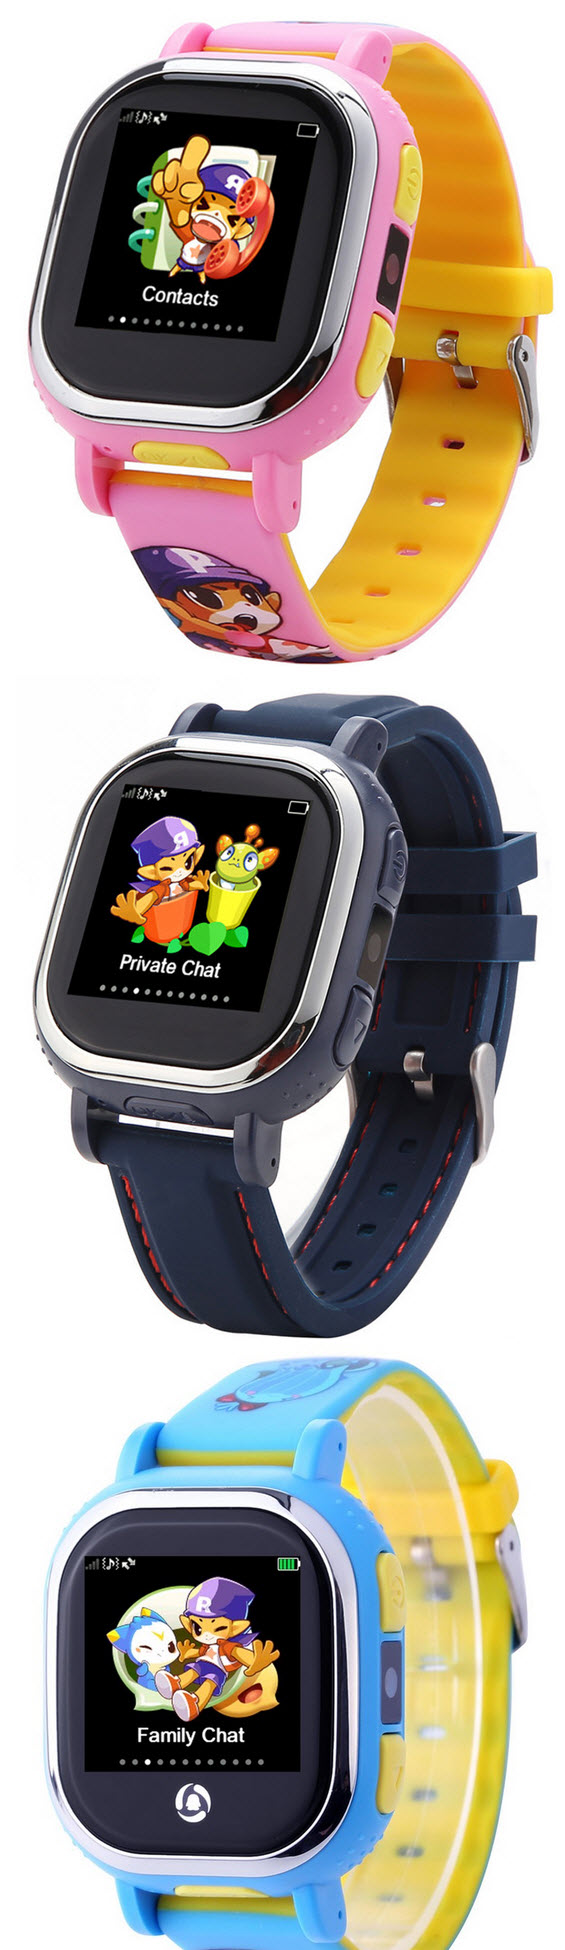 Smart-Watch für Kinder-Ortung: TENCENT QQ TOUCH